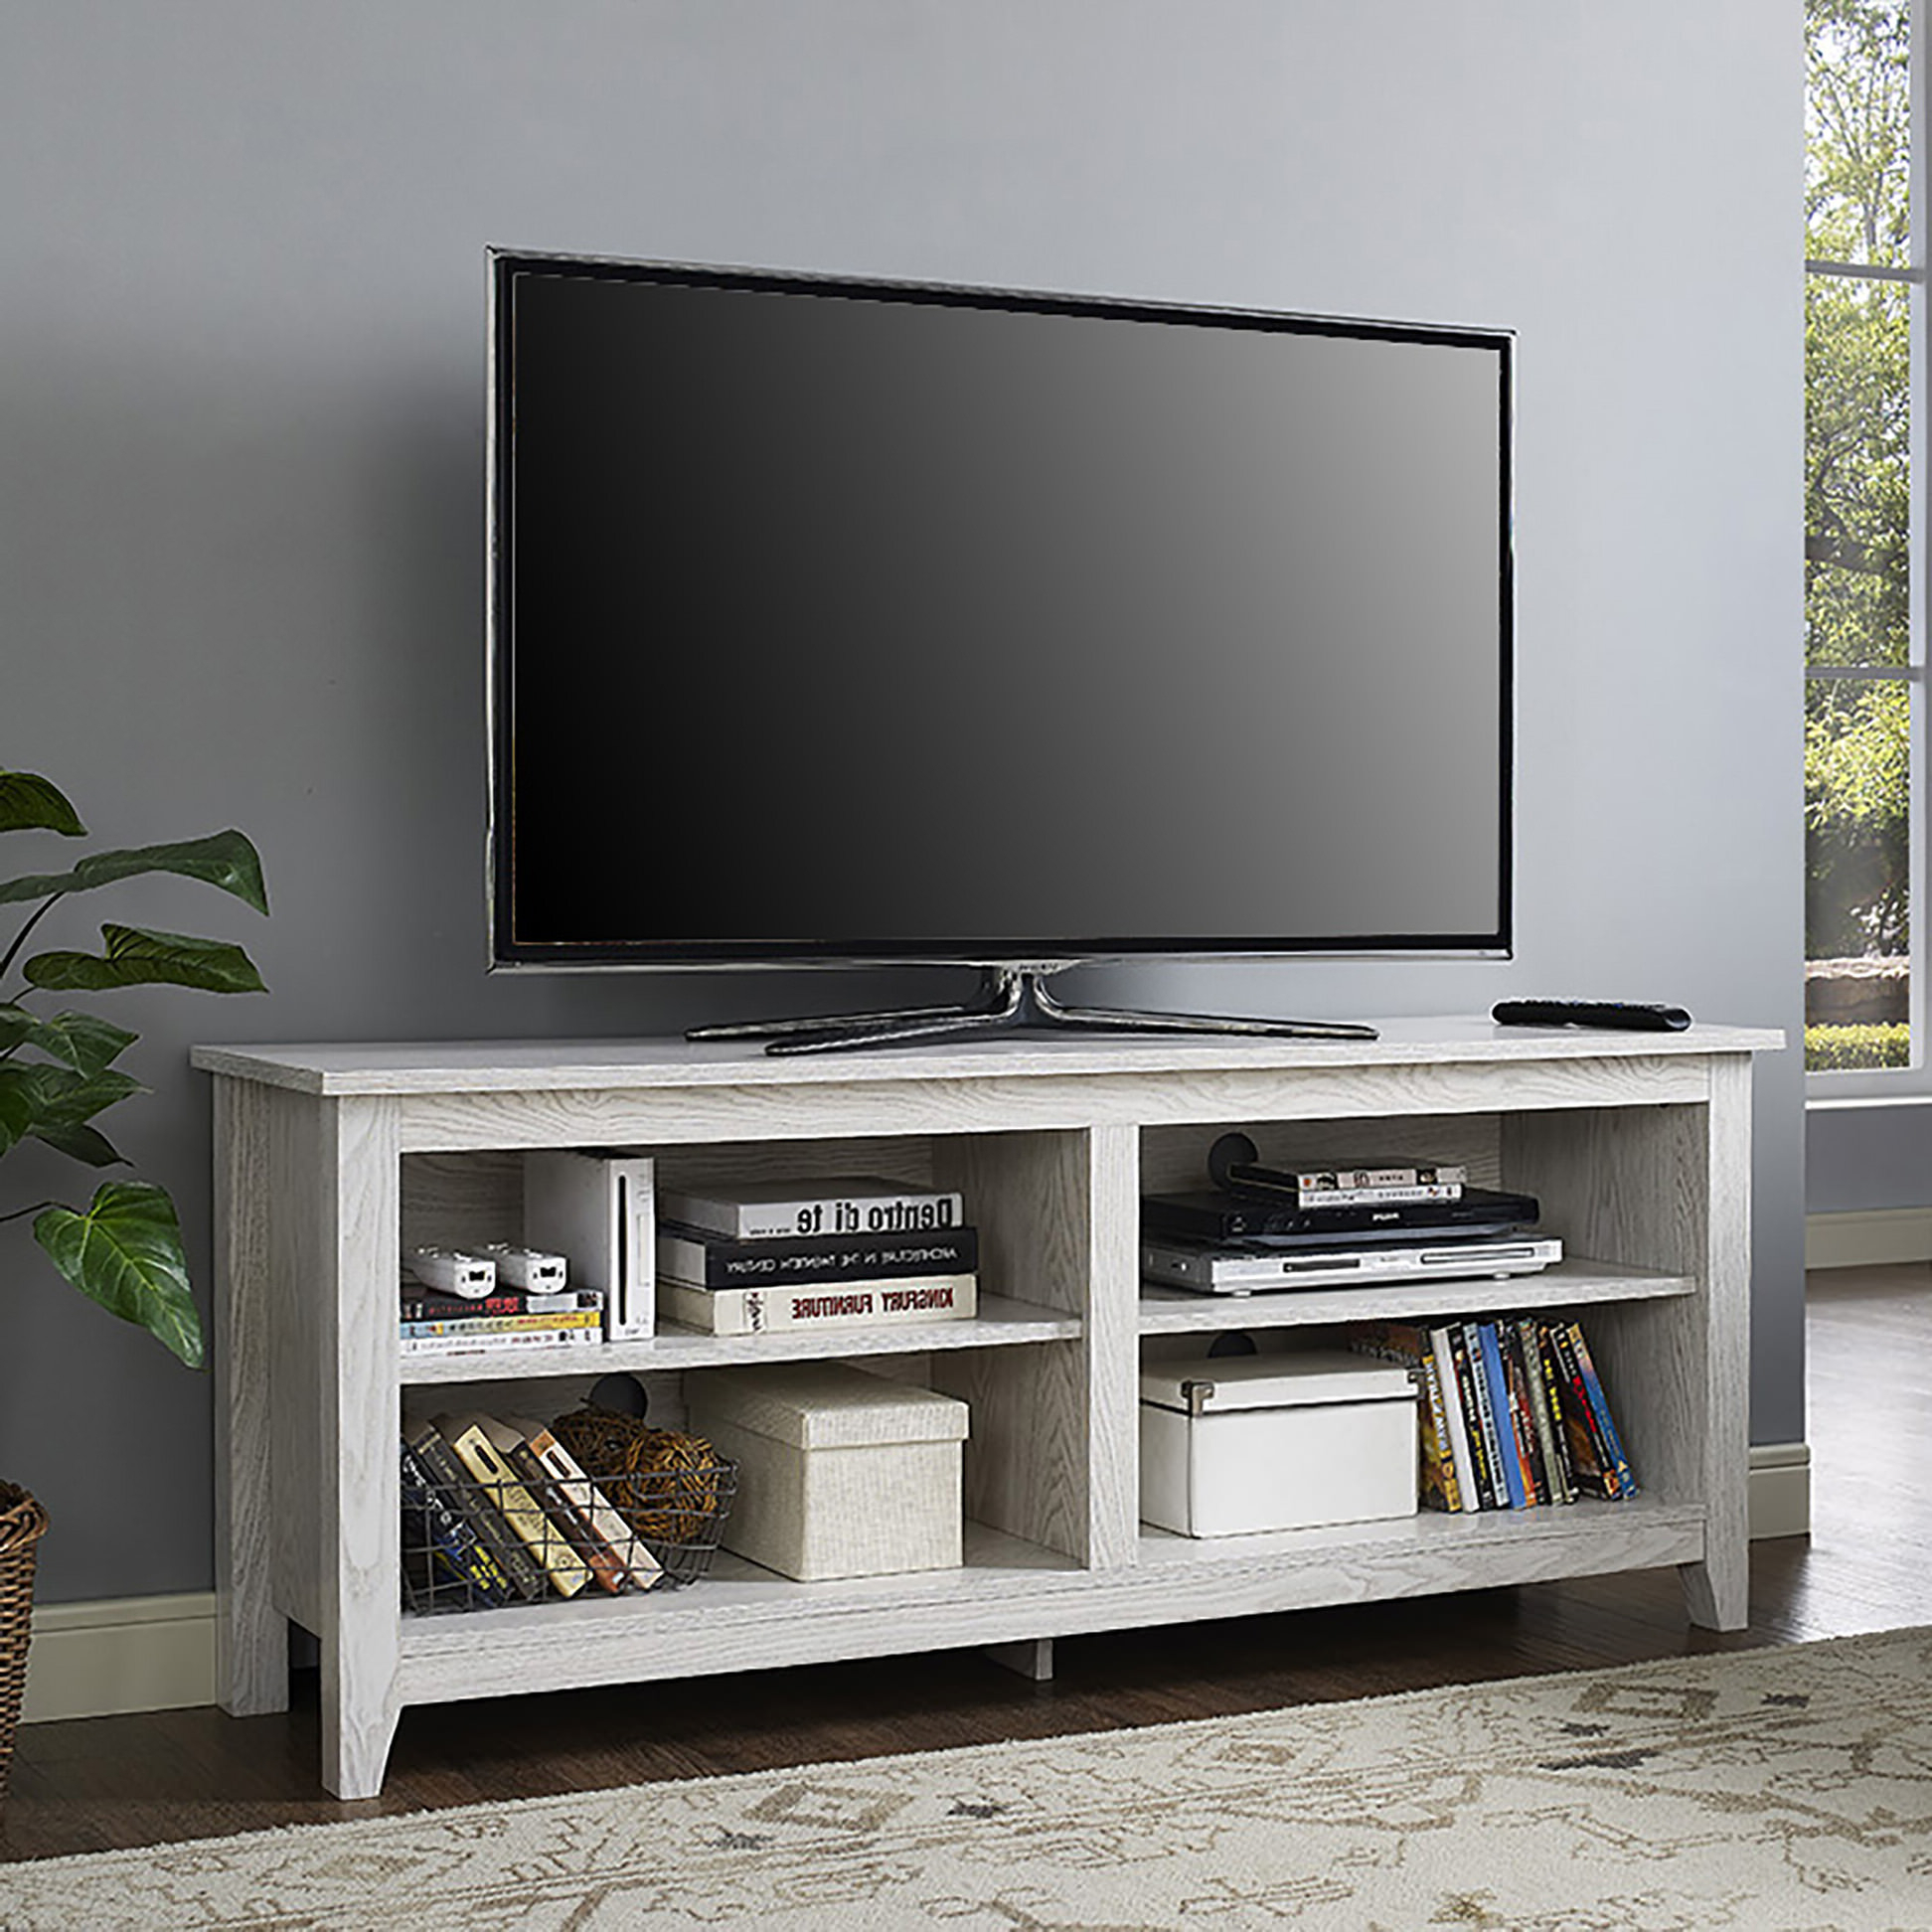 Most Recent 58 Inch White Wash Wood Tv Standwalker Edison Pertaining To White And Wood Tv Stands (View 4 of 20)